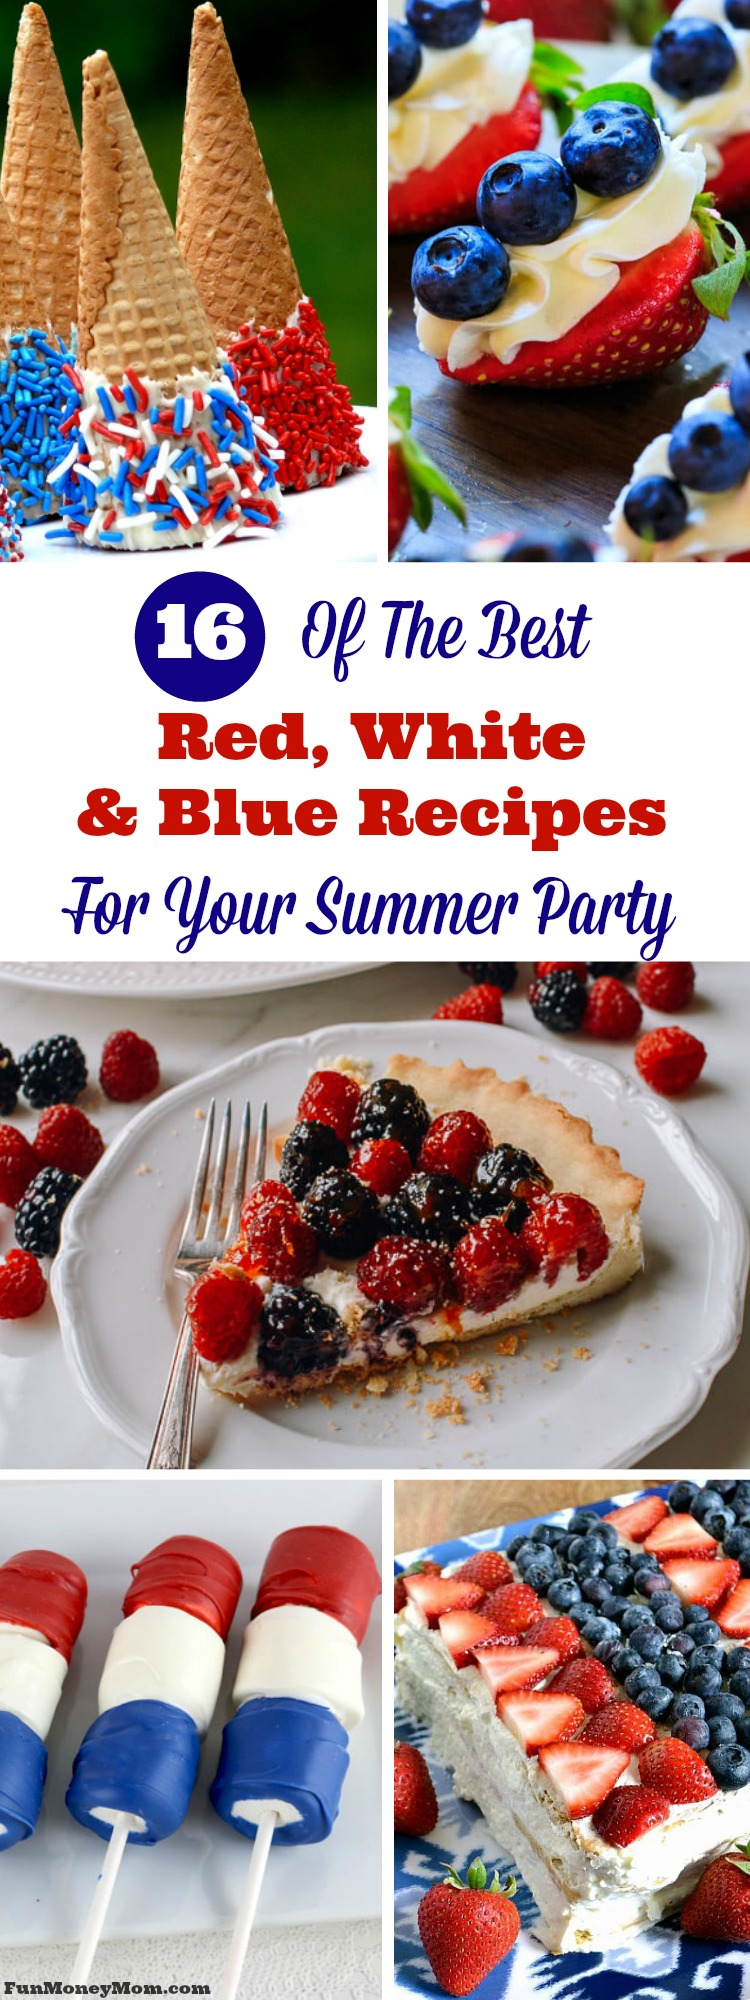 You can't have a Memorial Day or Fourth Of July party without some patriotic snacks, right? Serve these red white and blue recipes and your friends and family will be pledging their allegiance to you!